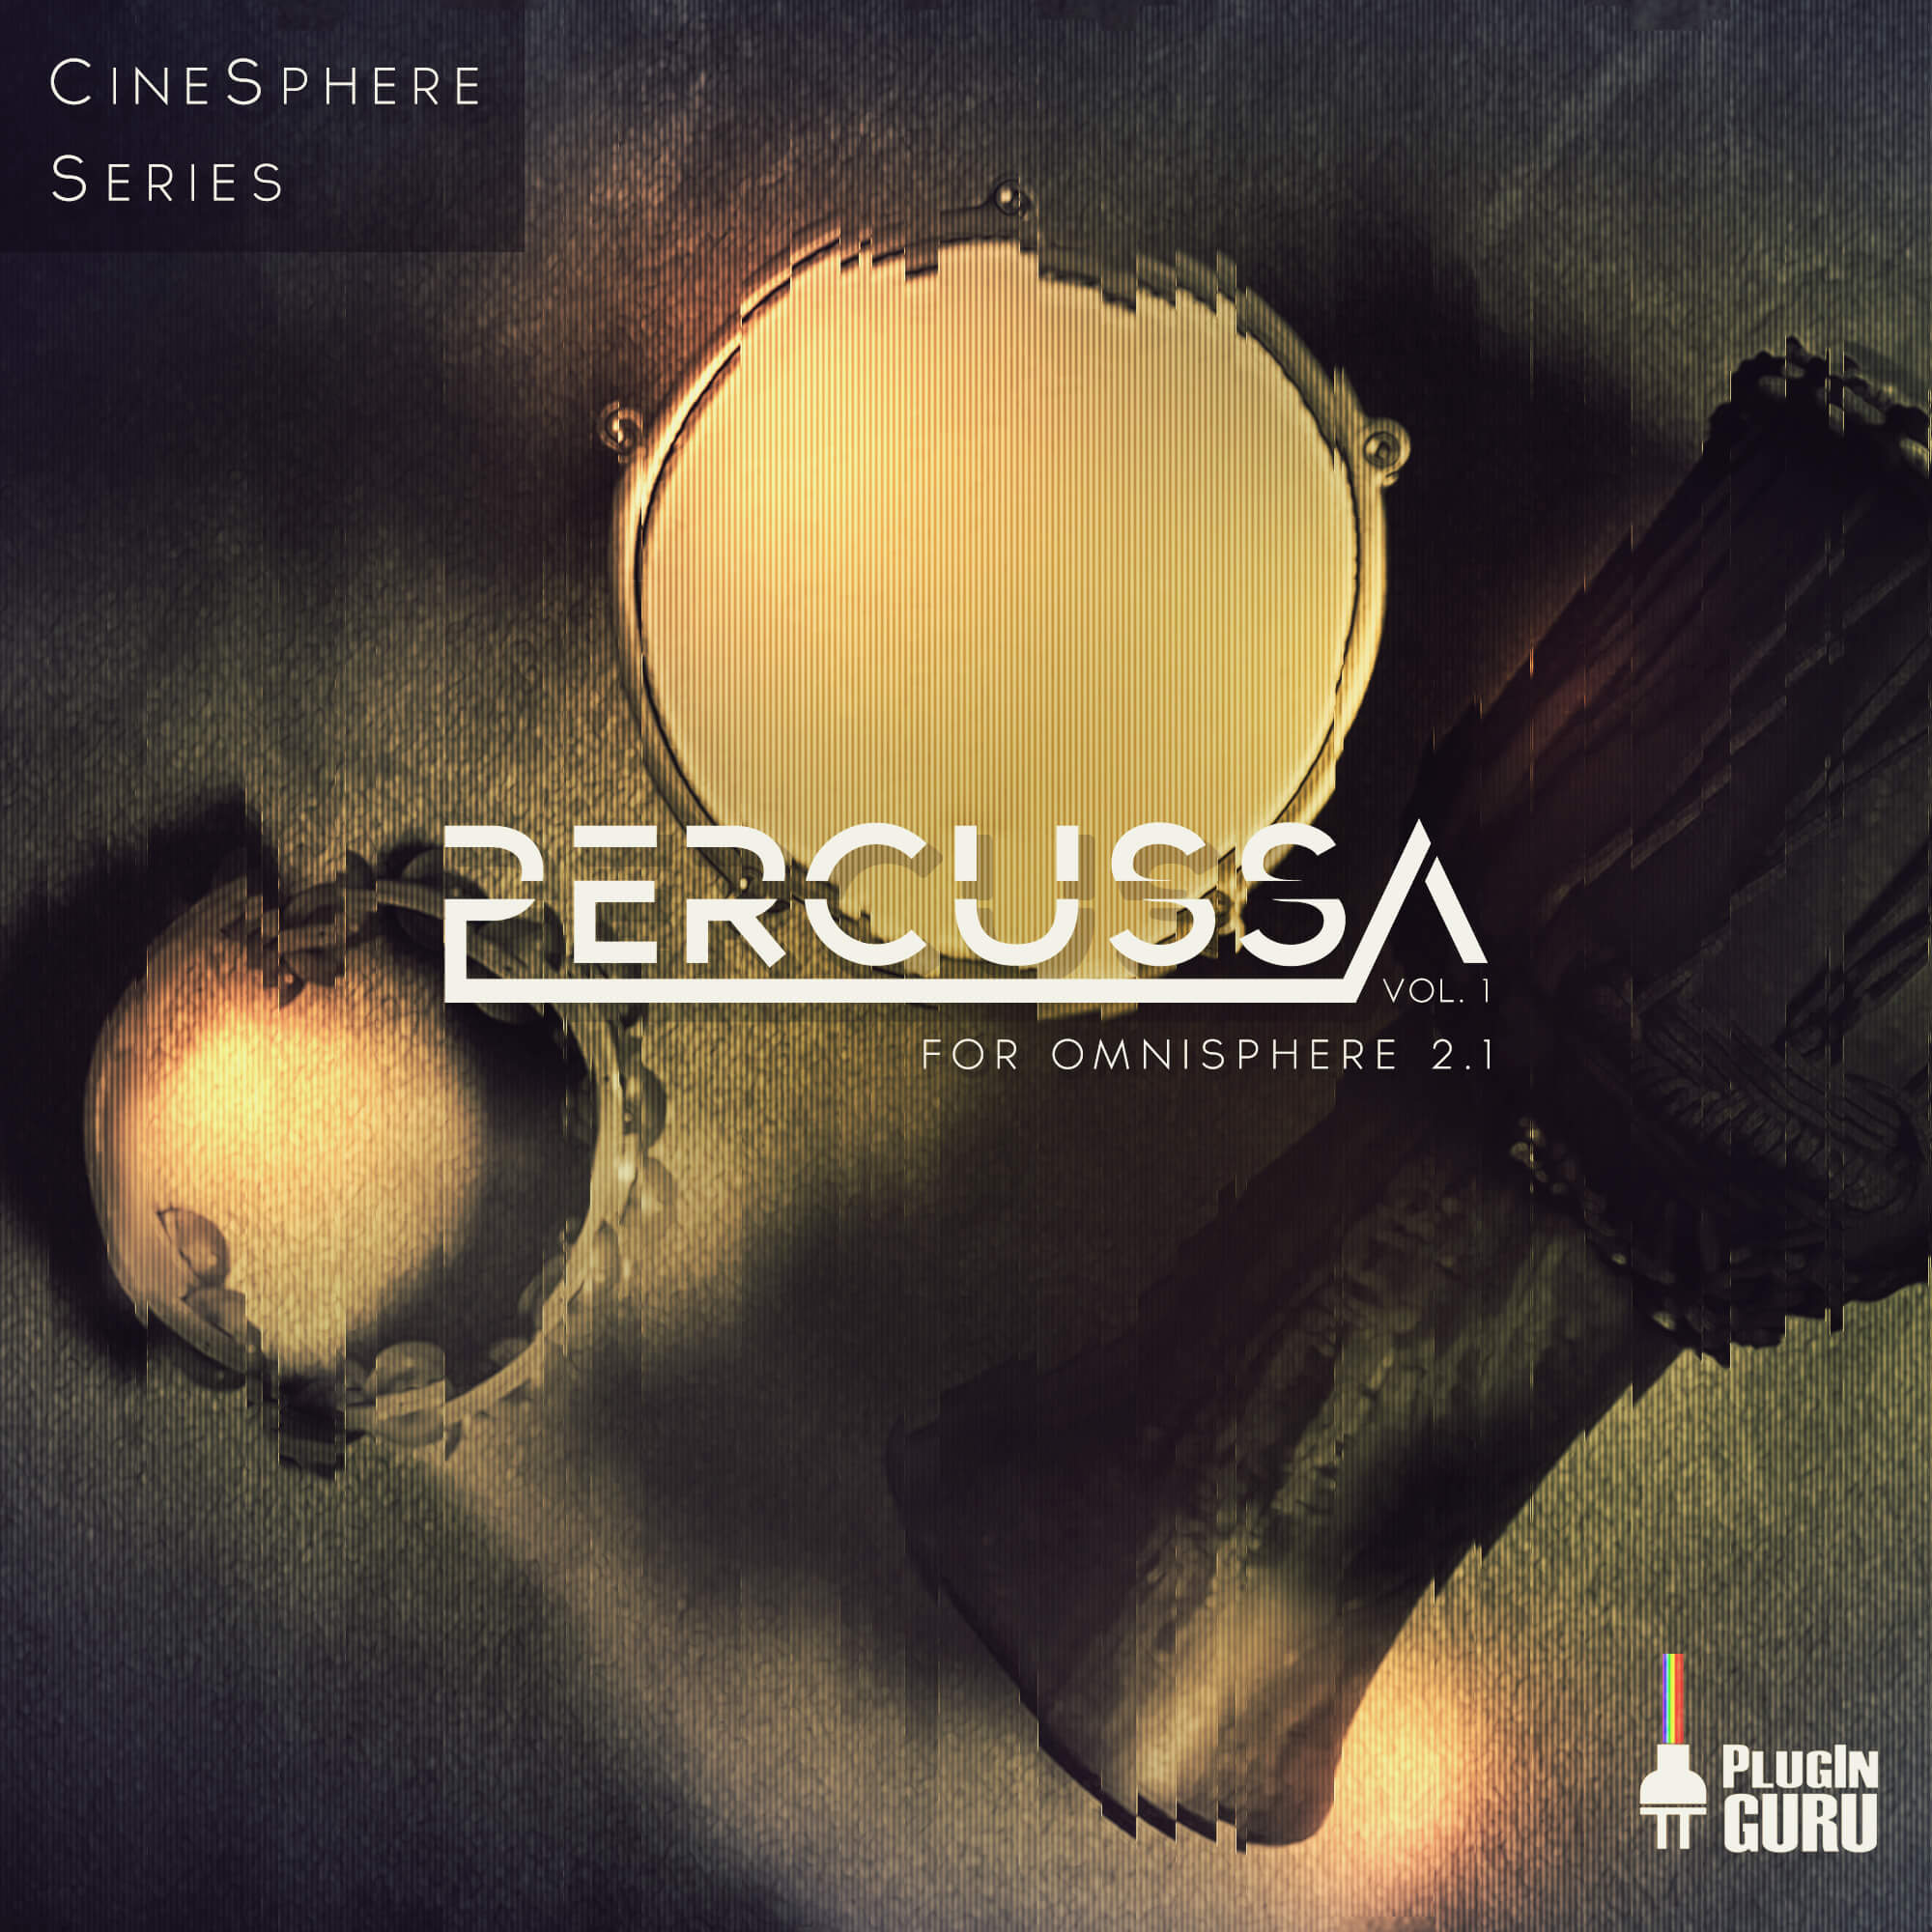 Cinematic Percussion Grooves by PlugInGuru for Omnisphere 2